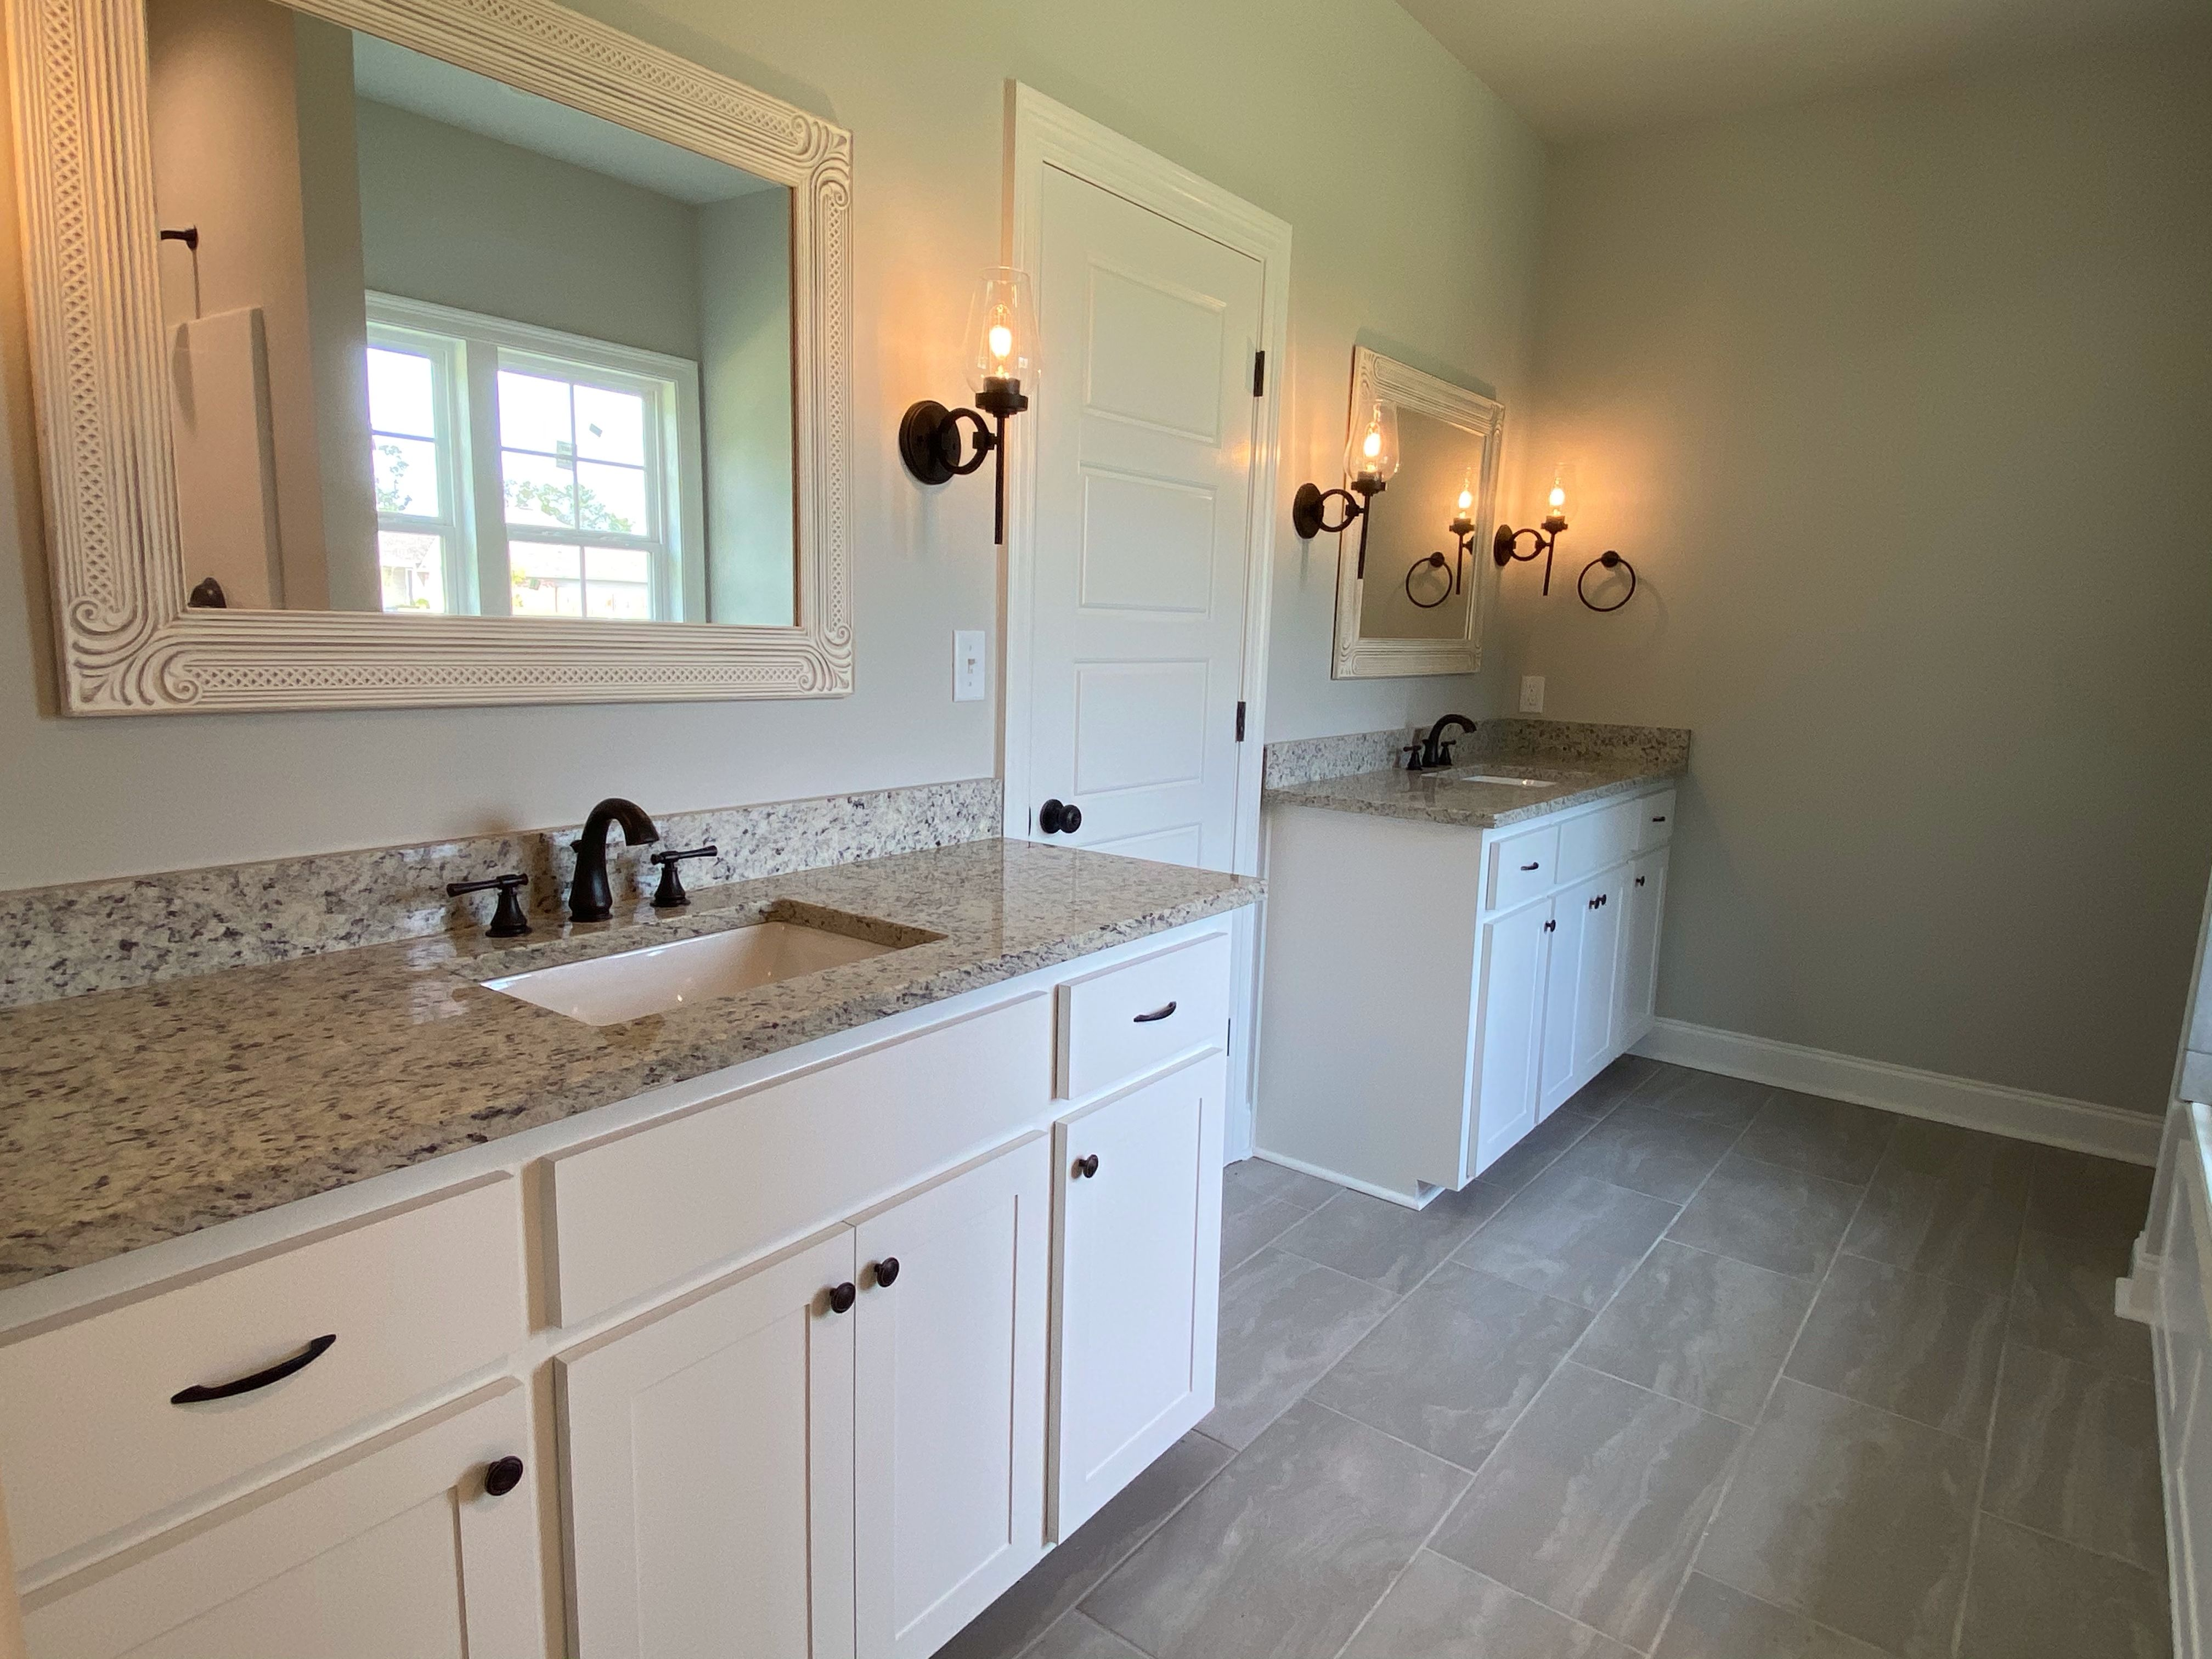 Bathroom featured in the Lot 18 By Gafford Builders in Baton Rouge, LA